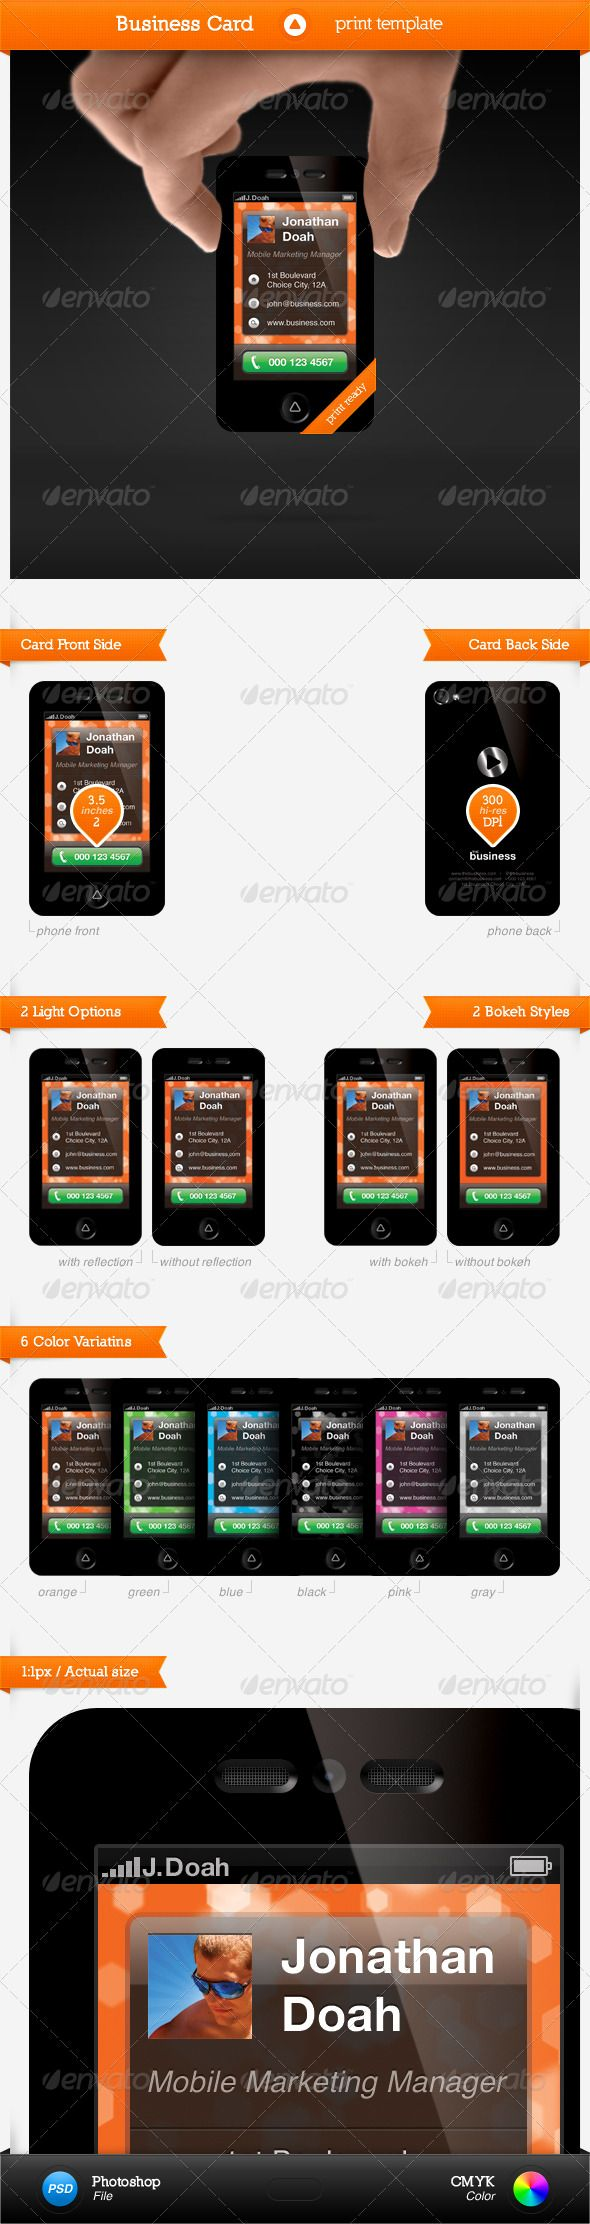 Smartphone Business Card   Business cards, Vector shapes and Business